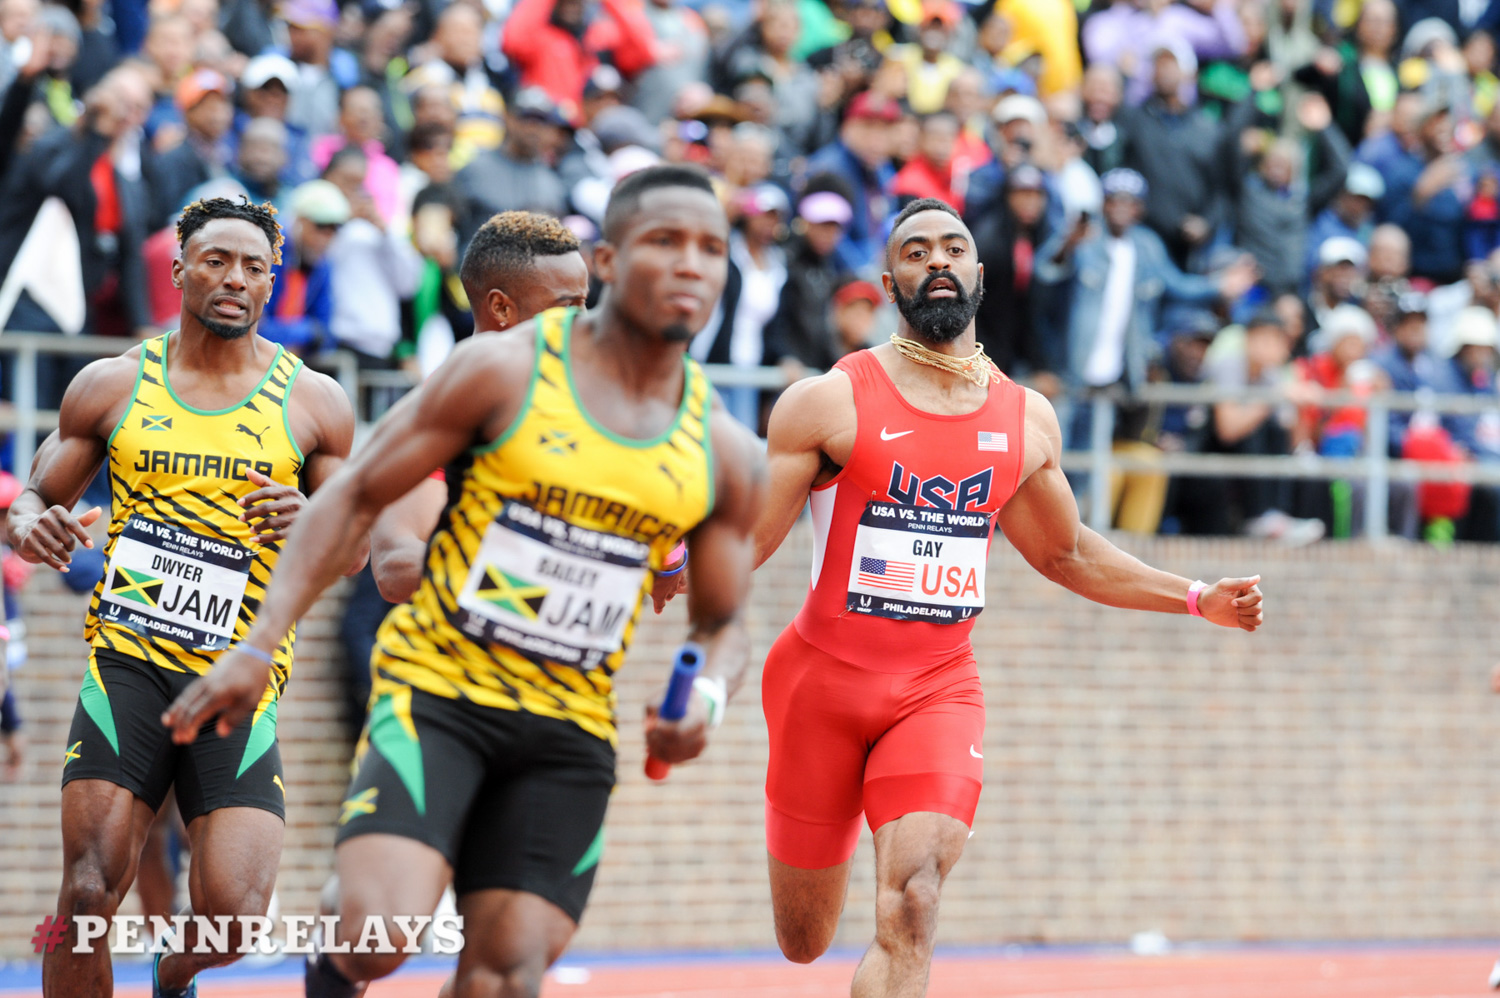 Tyson Gay, in red, struggles to hand off to Isiah Young at the 2016 Penn Relays // photo courtesy Penn Relays